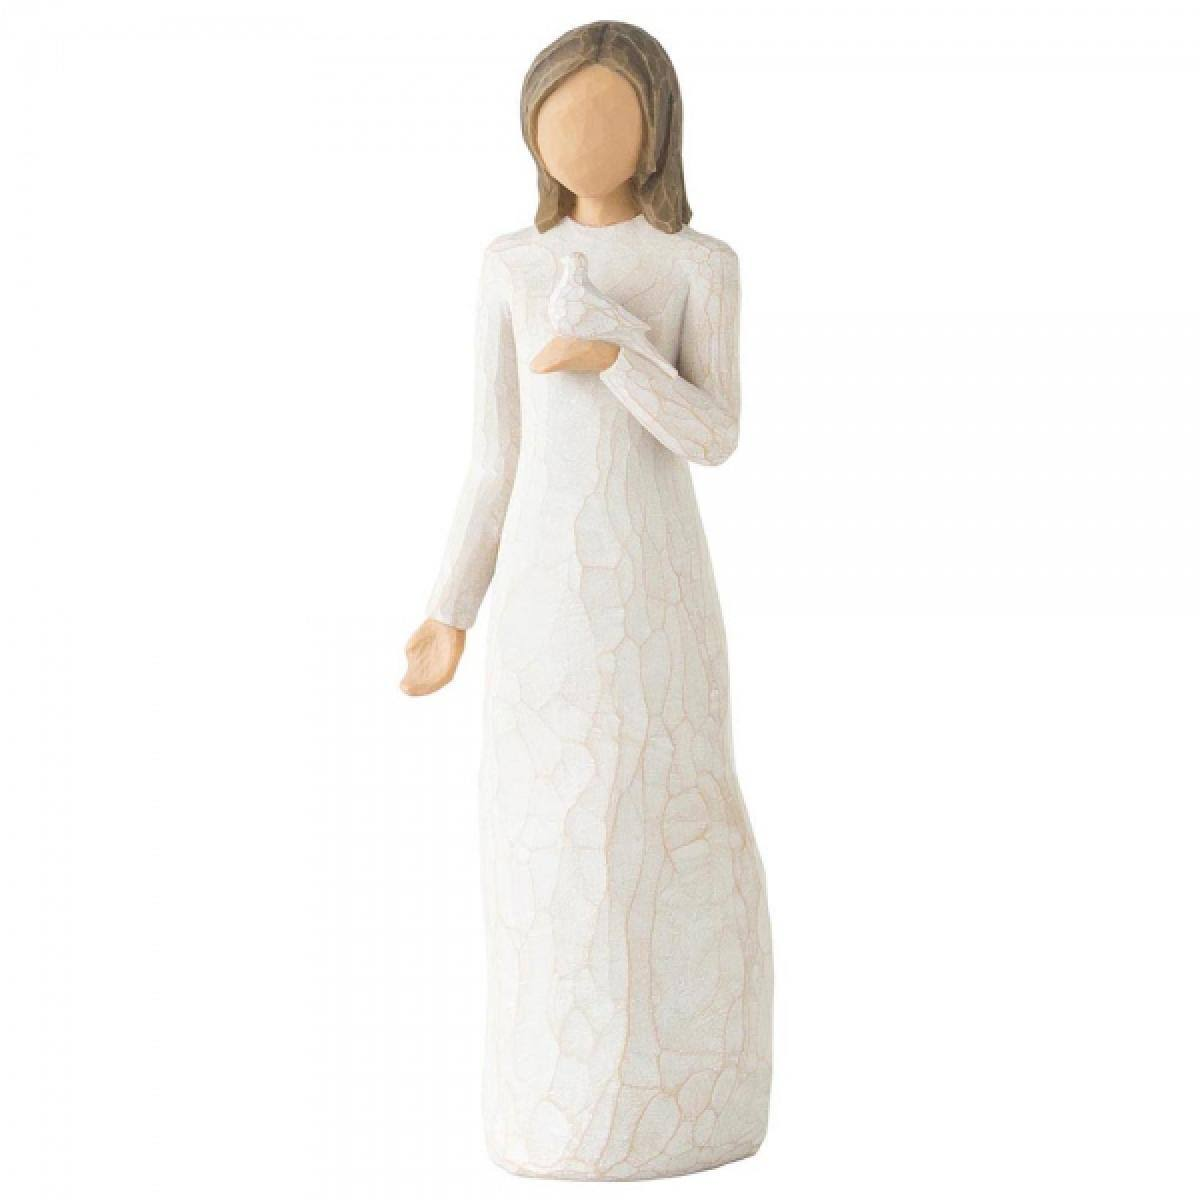 Willow Tree Figurine - with Sympathy